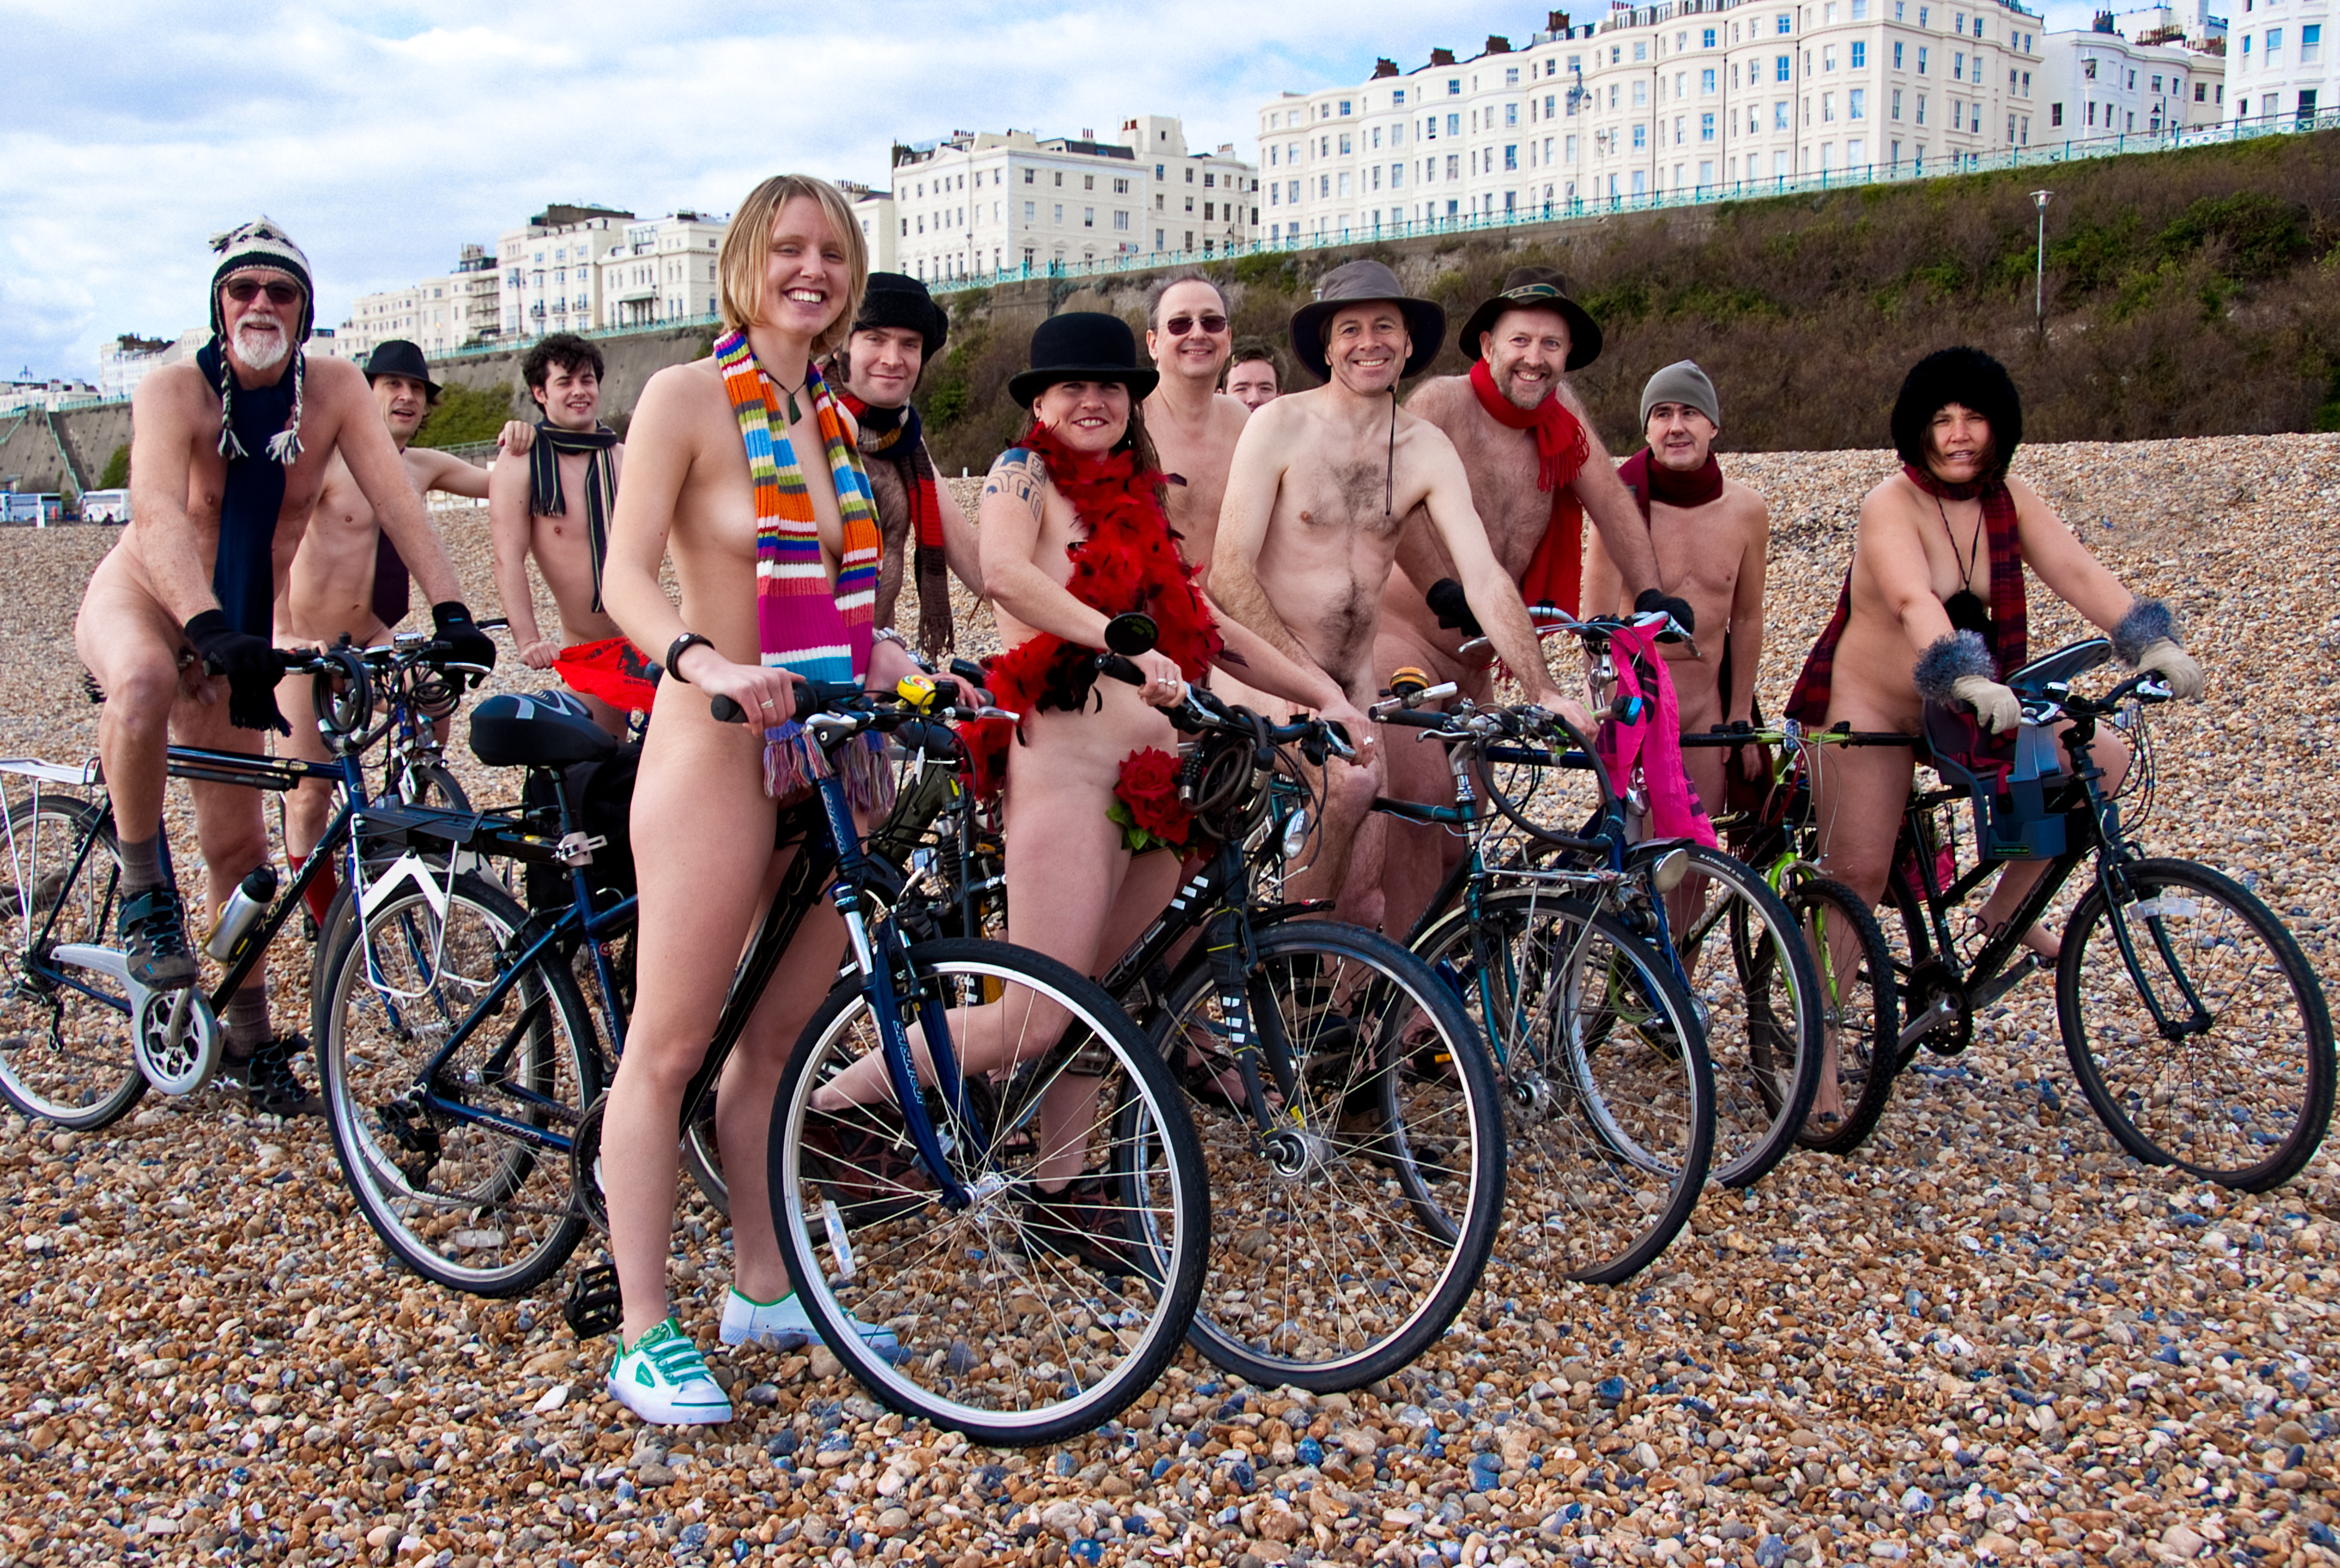 Naked Bike Ride - Visit Brighton